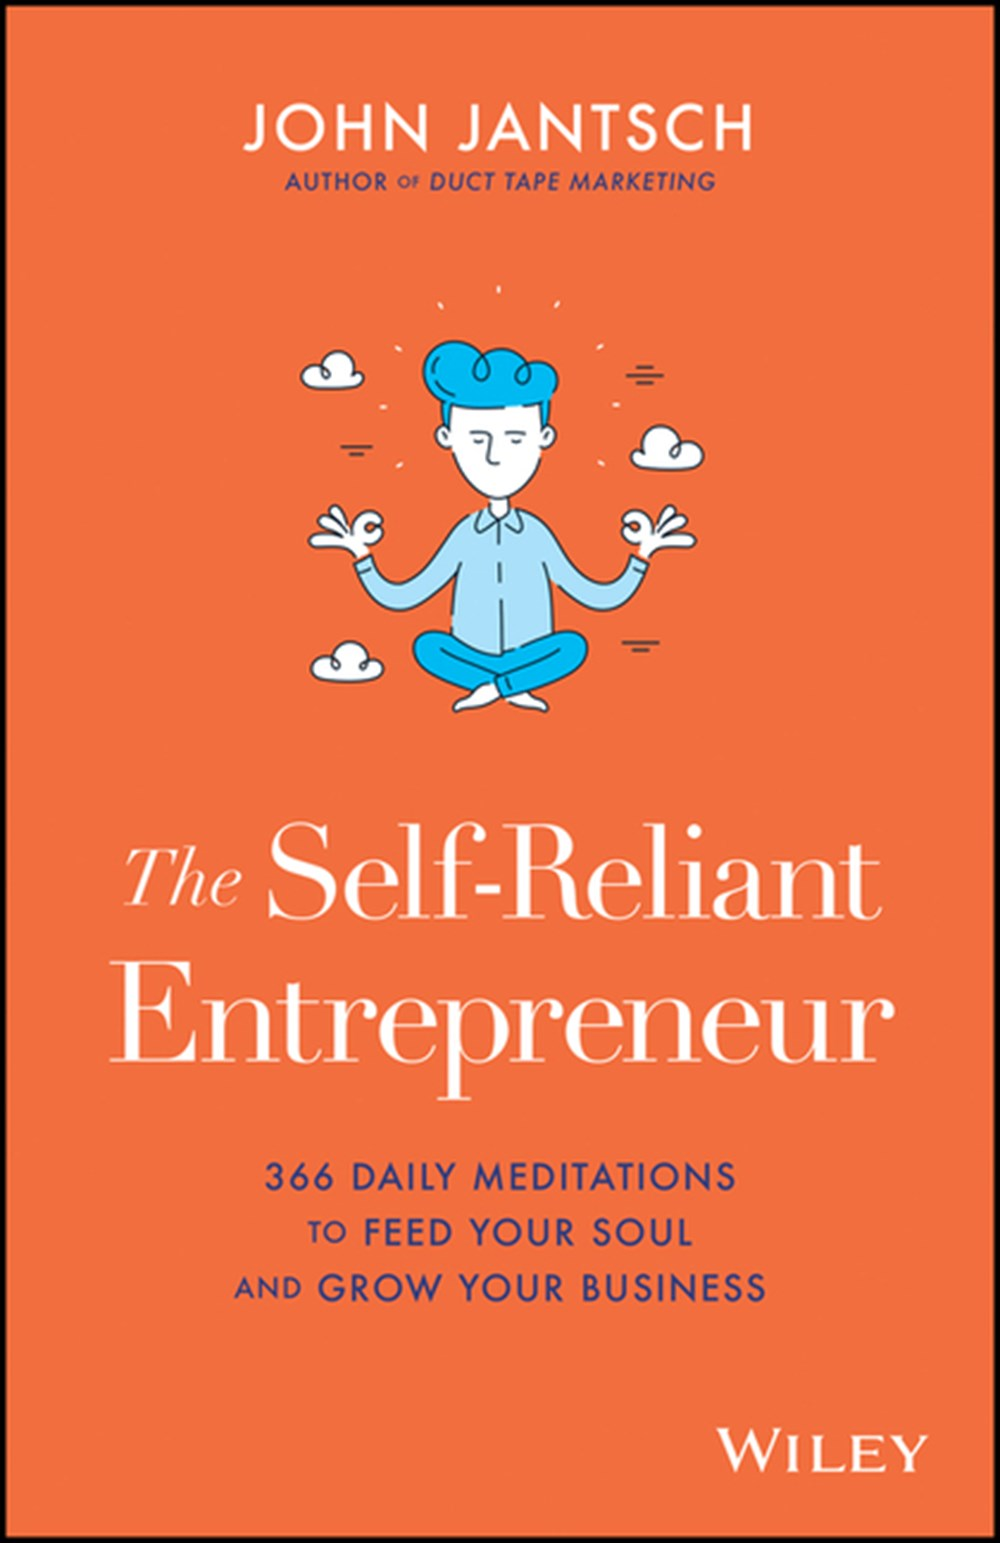 Self-Reliant Entrepreneur 366 Daily Meditations to Feed Your Soul and Grow Your Business